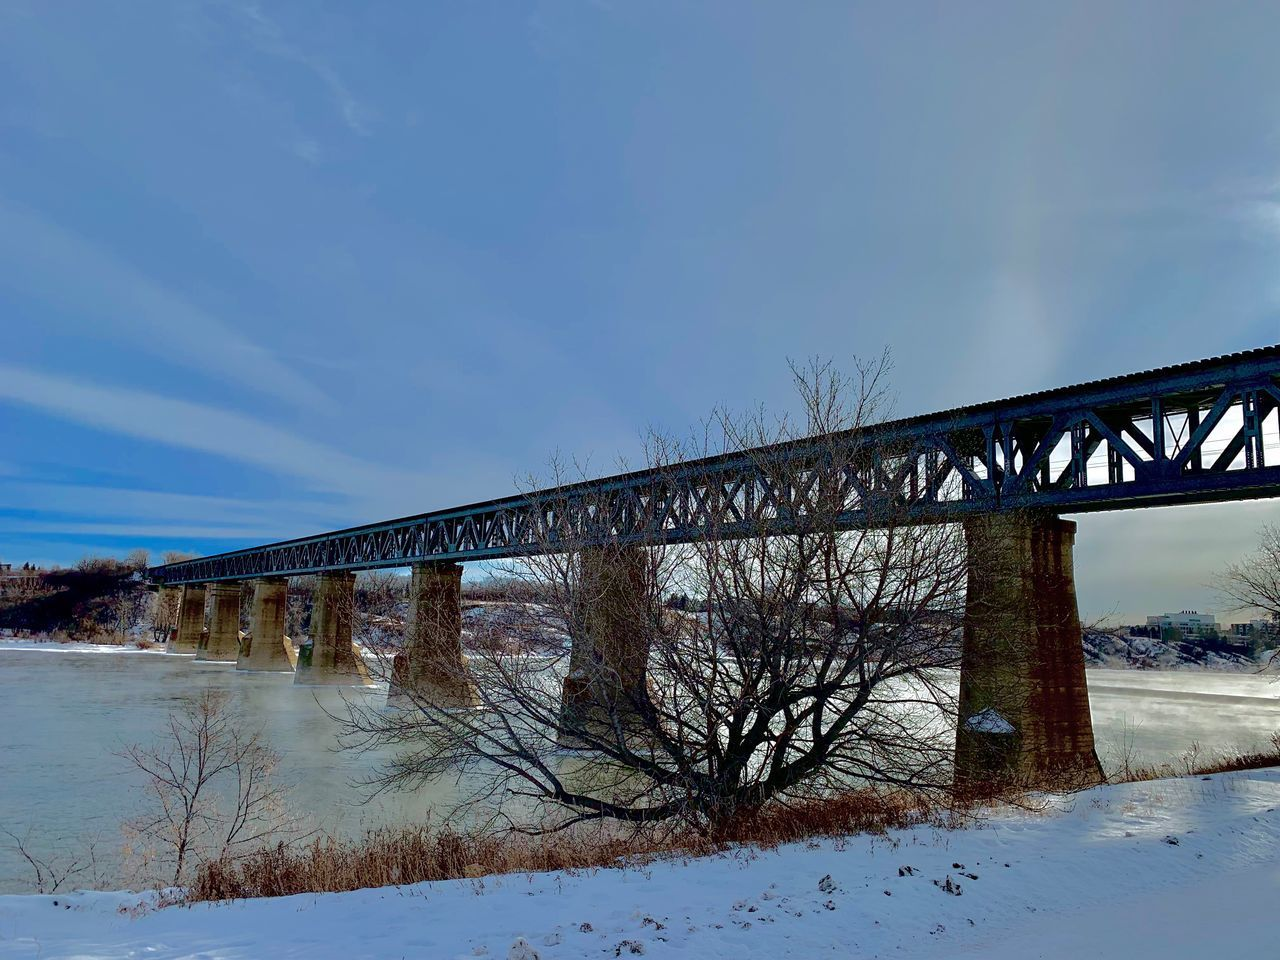 ARCH BRIDGE OVER RIVER AGAINST SKY DURING WINTER